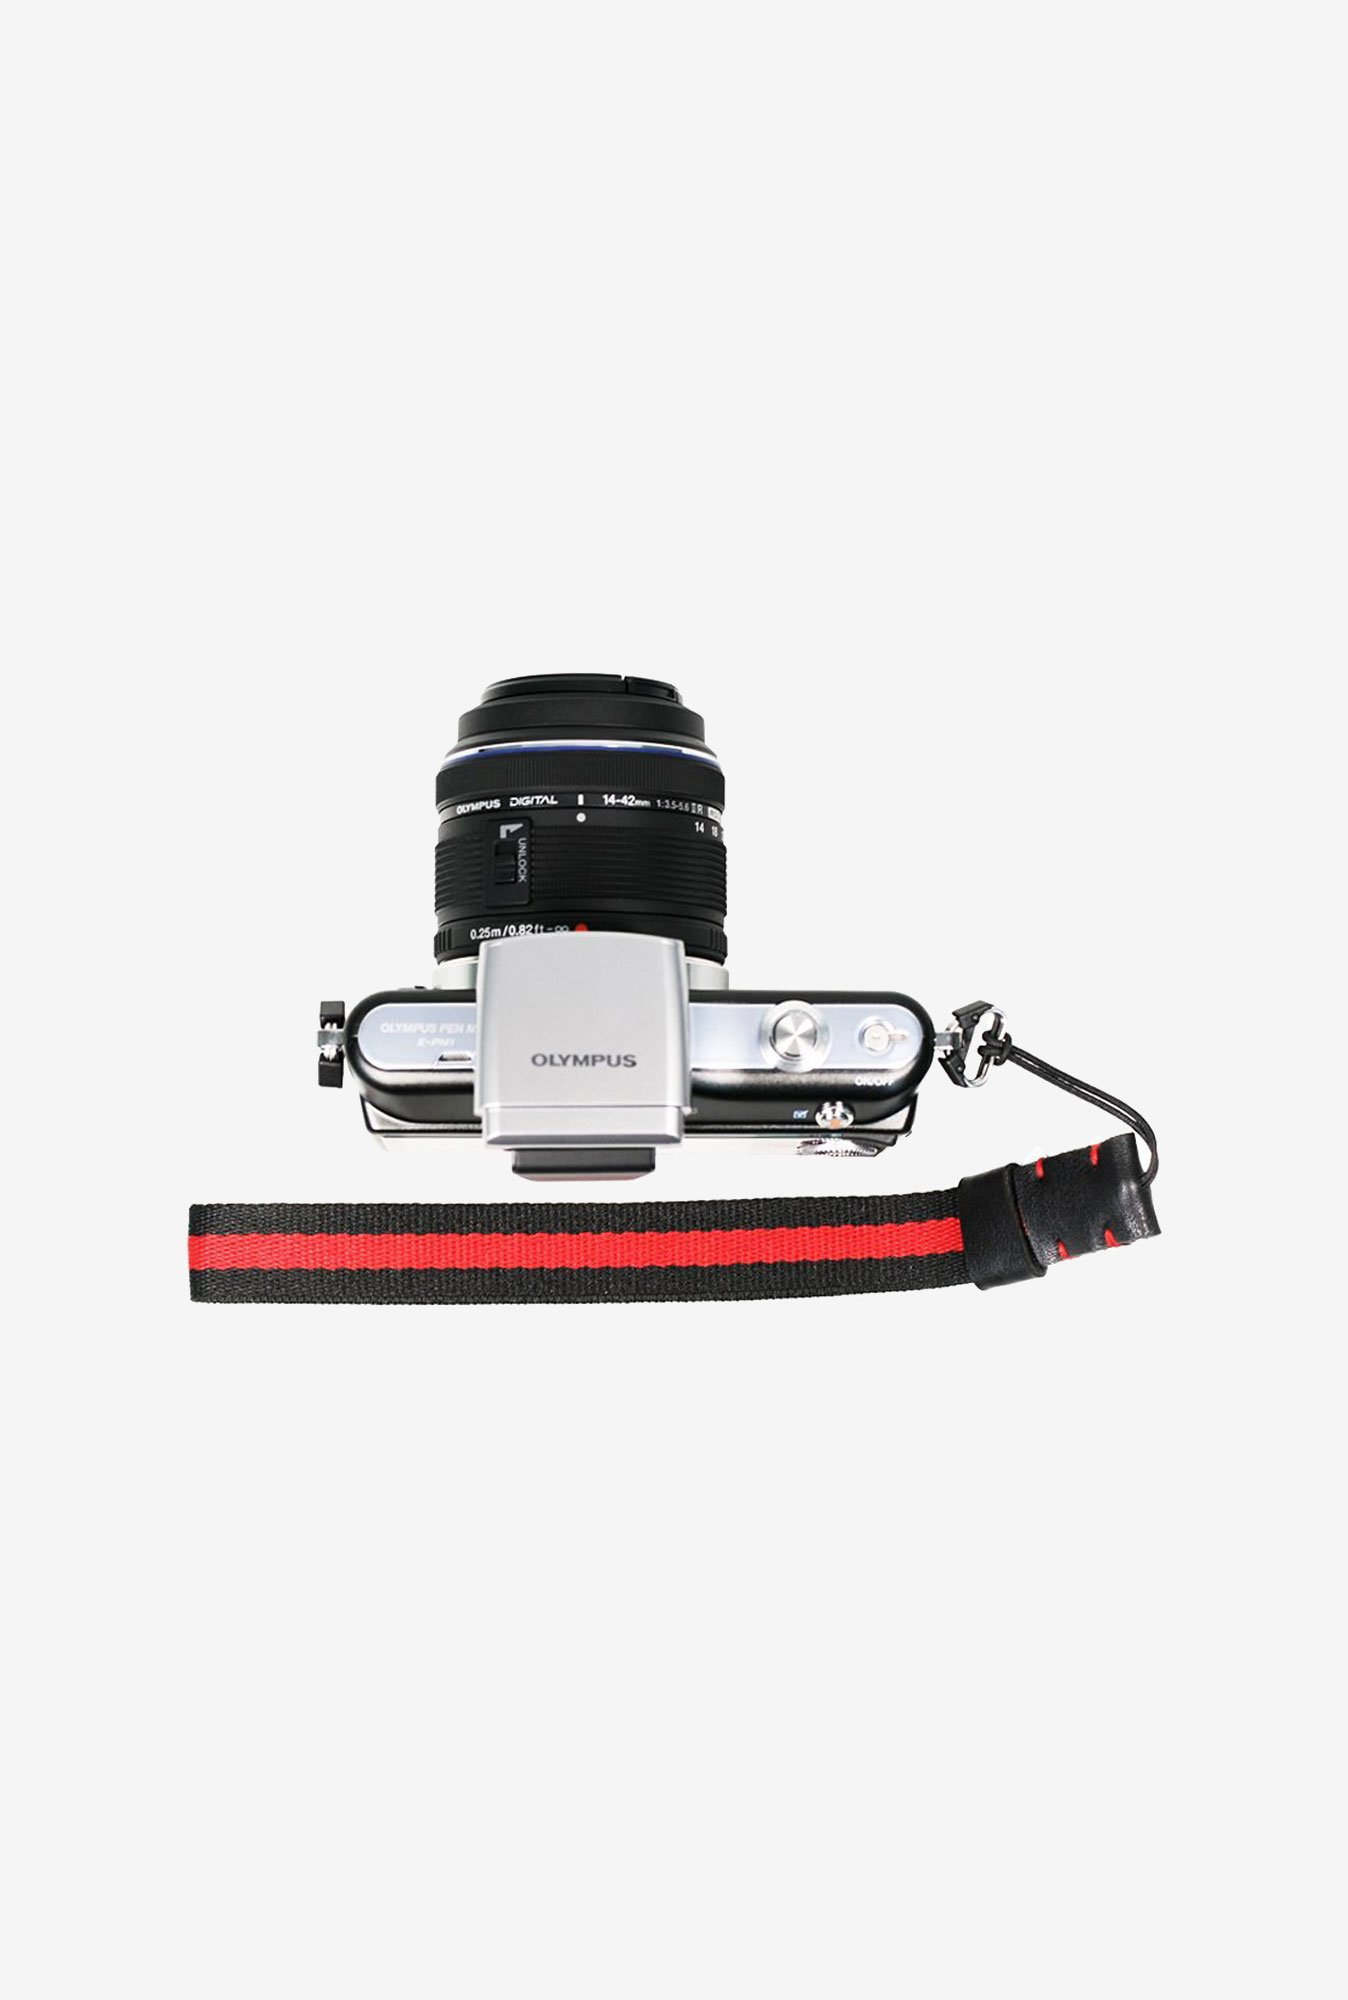 FotoTech Knitted Grosgrain Wrist Strap (Black & Red)